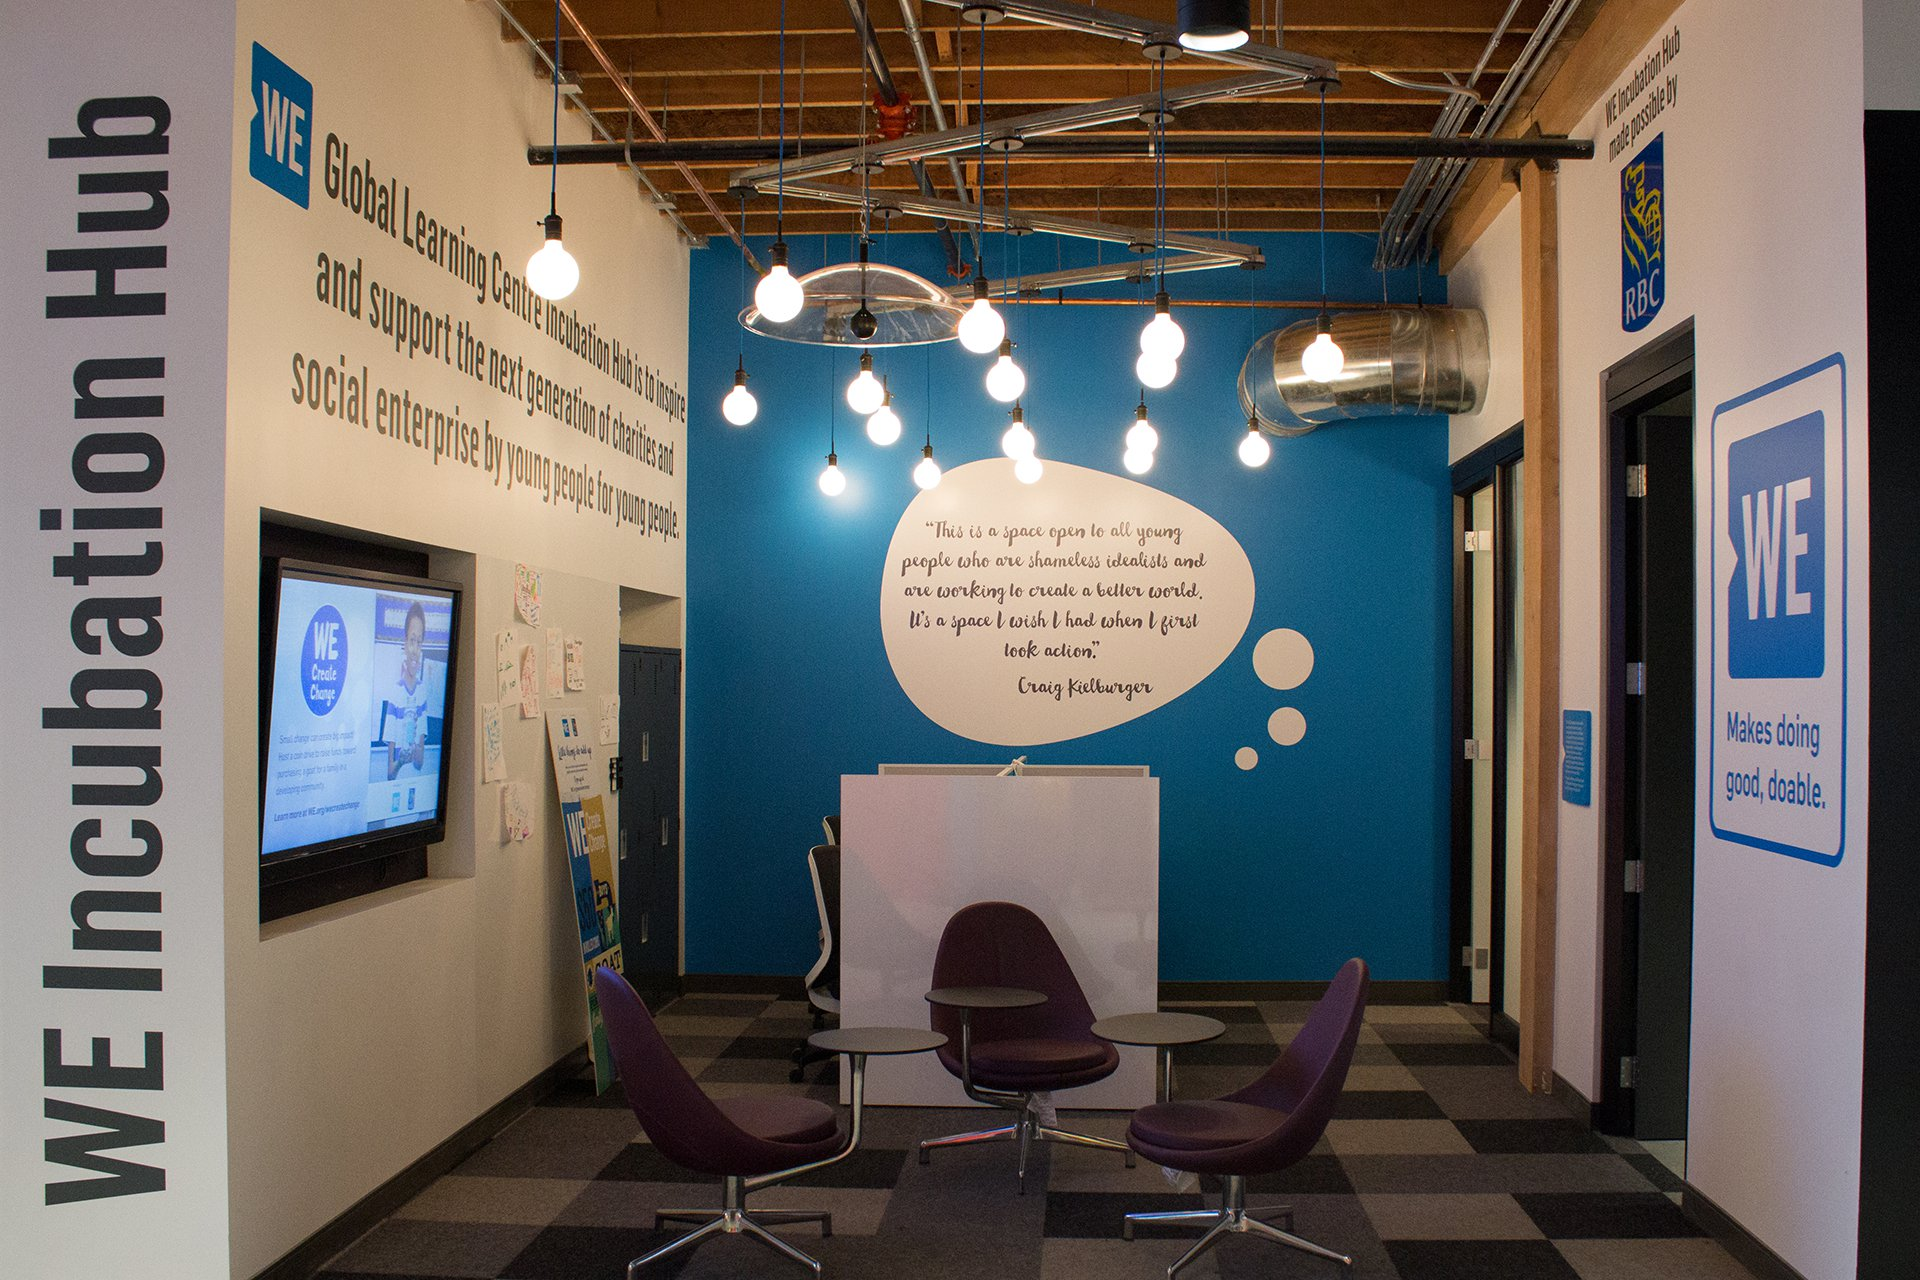 The WE Incubation Hub, where youth can take part in the Social Entrepreneurship Program